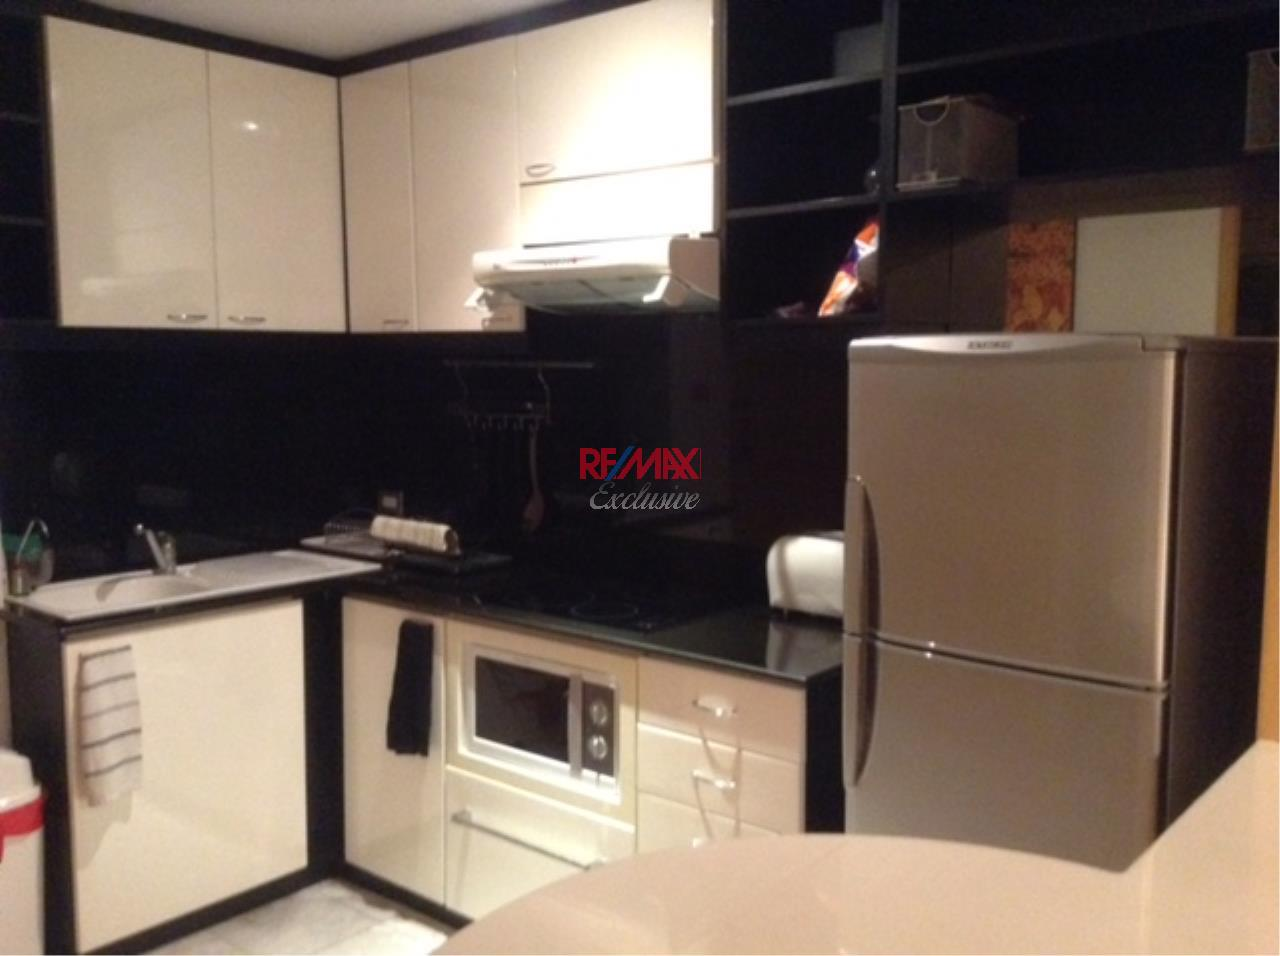 RE/MAX Exclusive Agency's Spacious 1 bedroom 86.5 sqm for sale or rent in Lake avenue 3